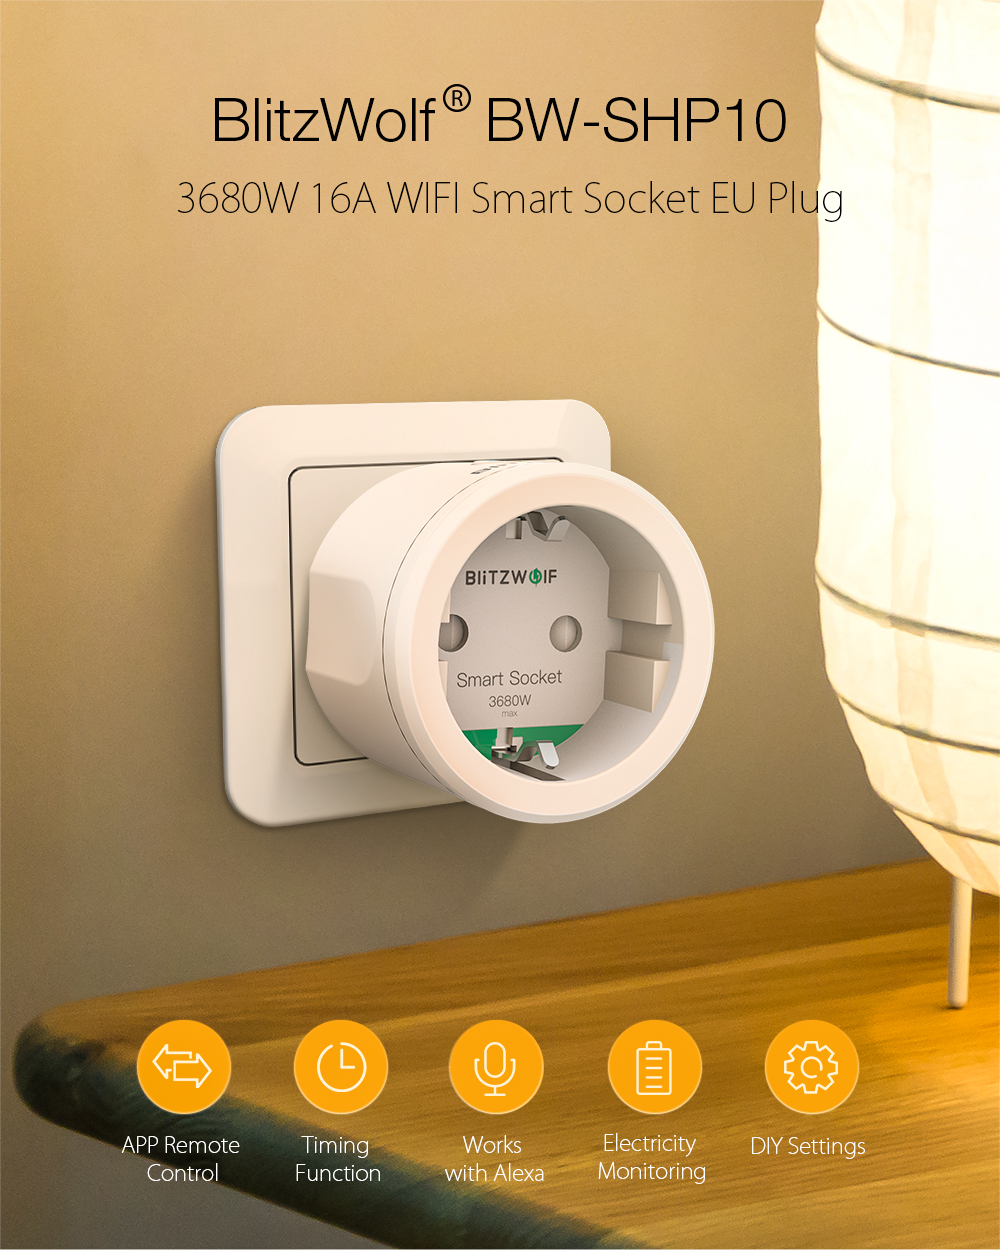 Blitzwolf BW-SHP10 smart socket